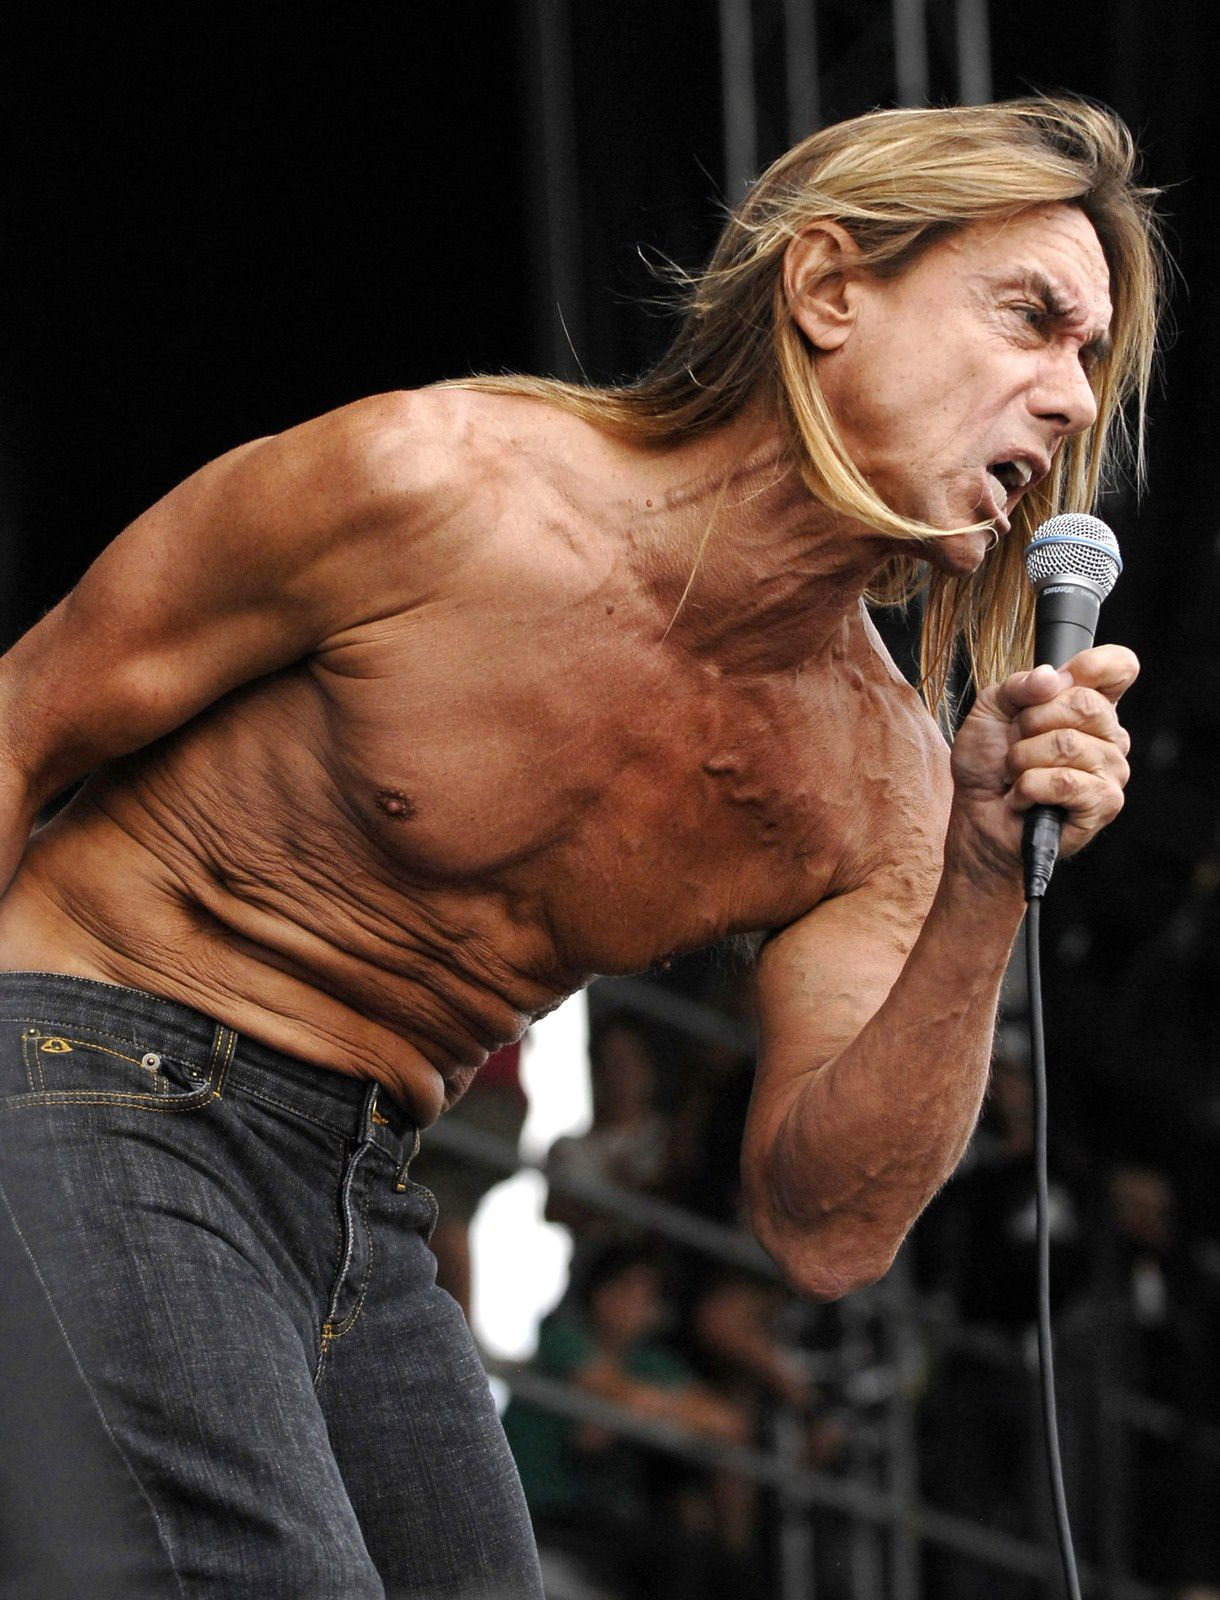 Iggy Pop of the band Iggy and the Stooges performs at Virgin Mobile Festival in Baltimore in this August 10, 2008